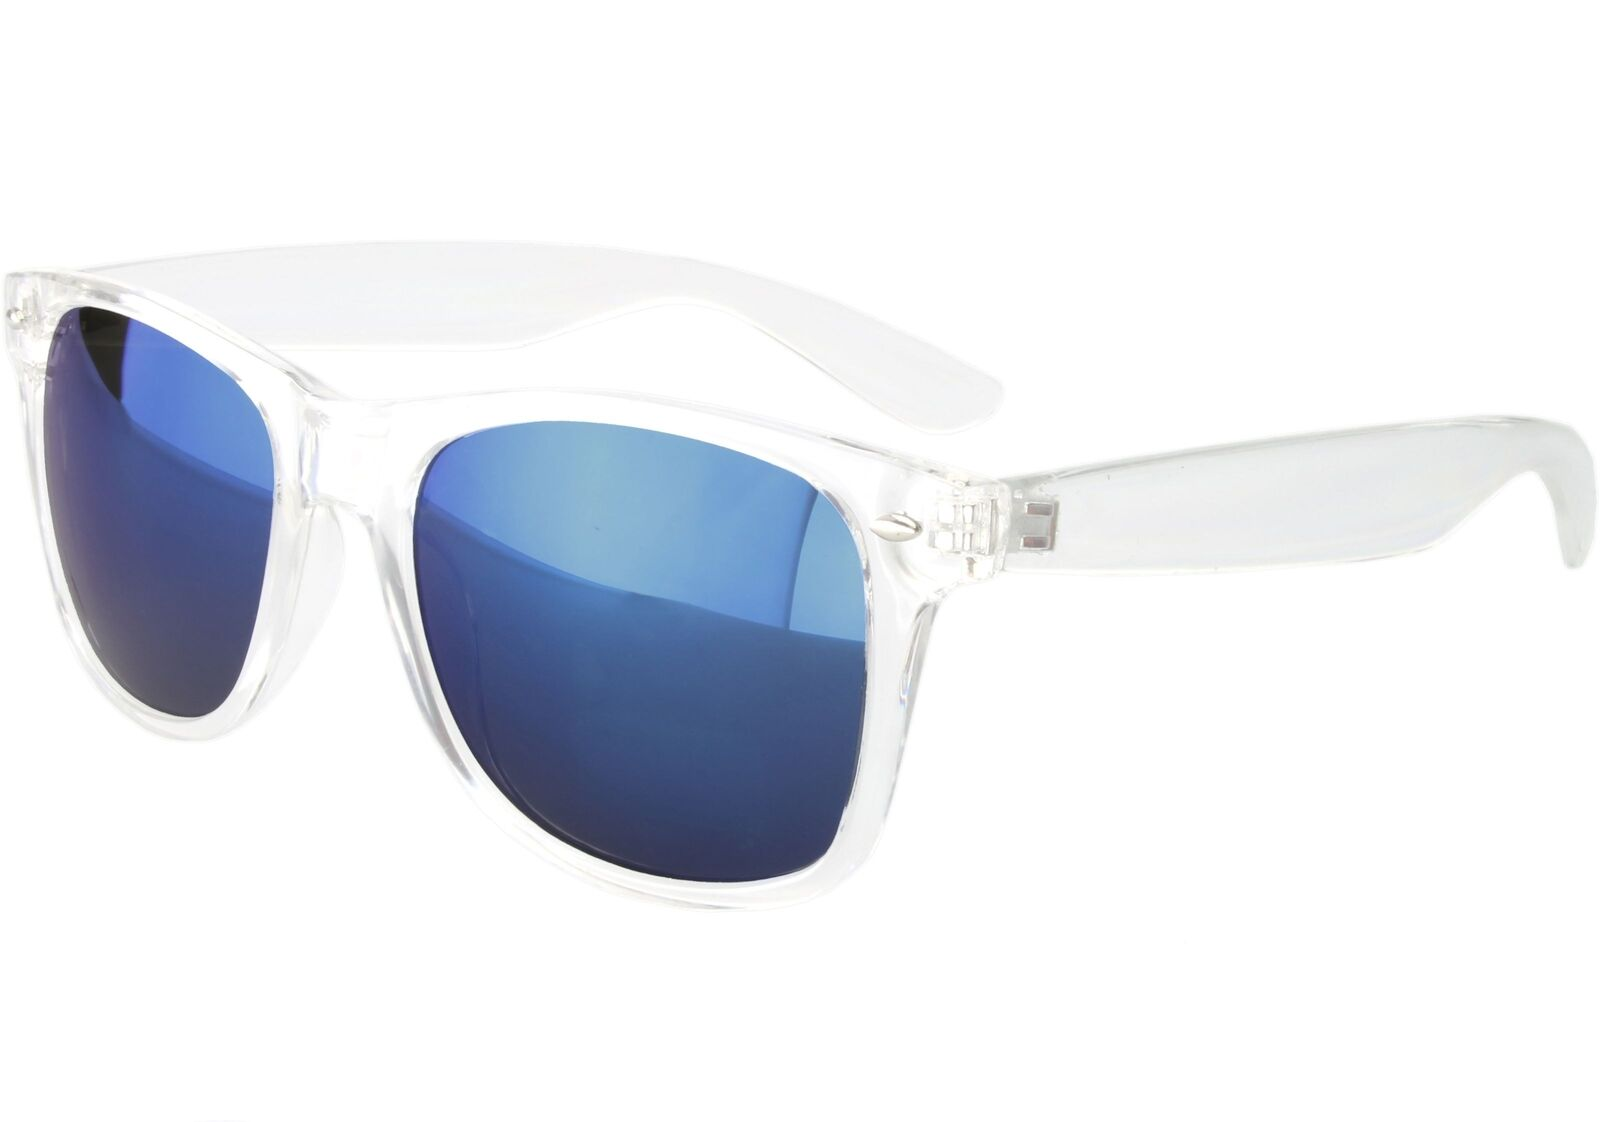 Clear Frame Classic Sunglasses Blue Mirror Lenses | eBay